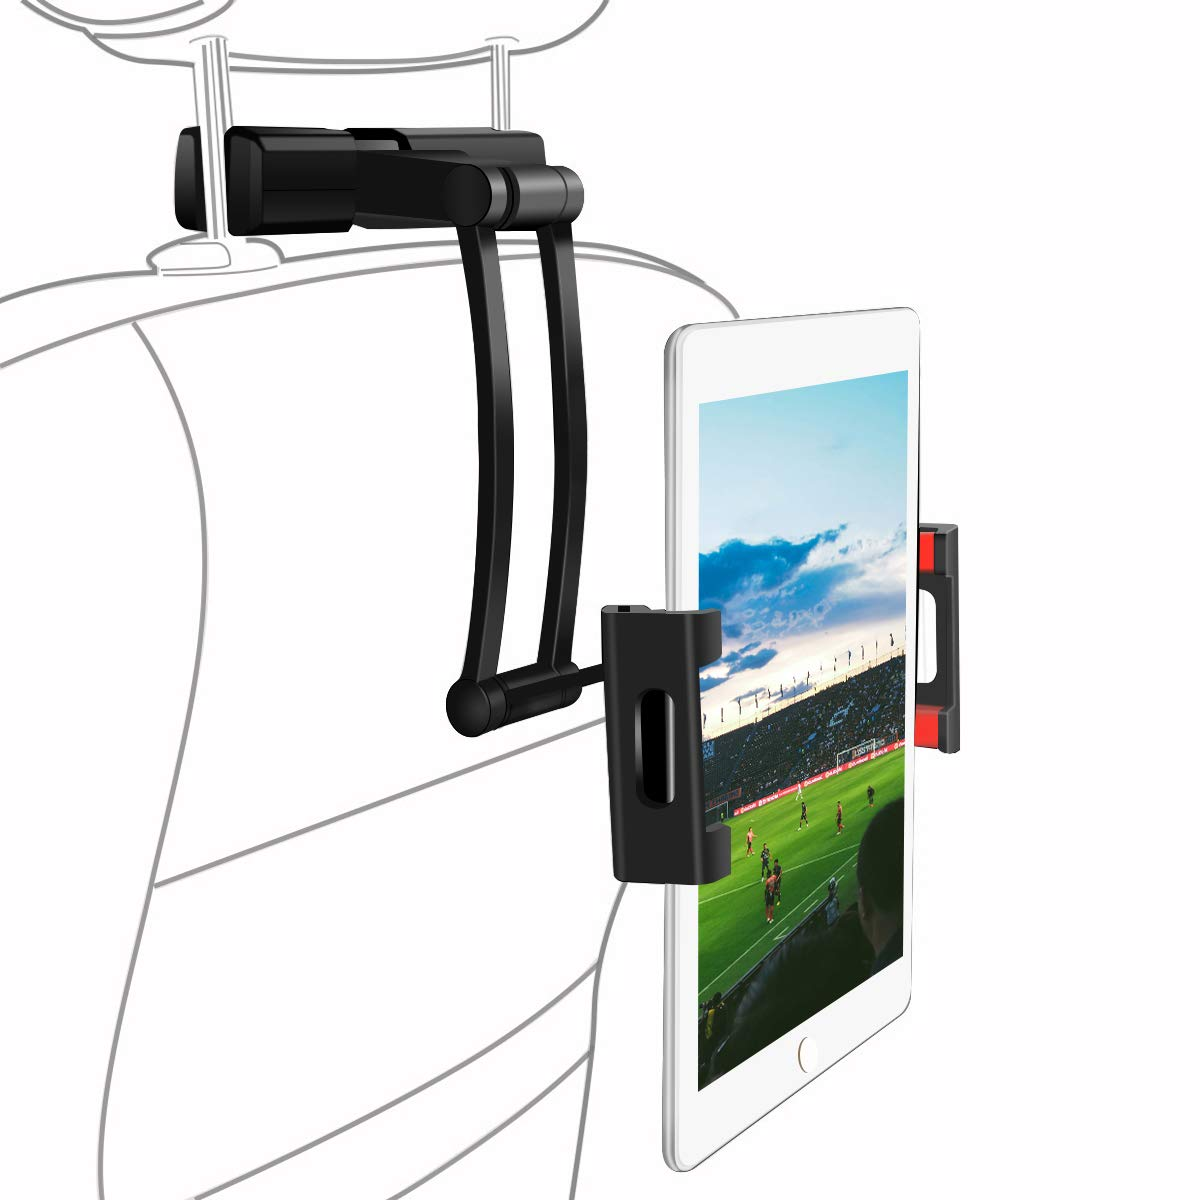 SAWAKE Car Headrest Mount Universal Car Tablet Phone Stand Holder Bracket Adjustable 360° Rotation for 5''-14'' for iPad Pro,iPad Mini, Samsung, Tablets, Telephone, Kindle, E-Reader and Other Devices